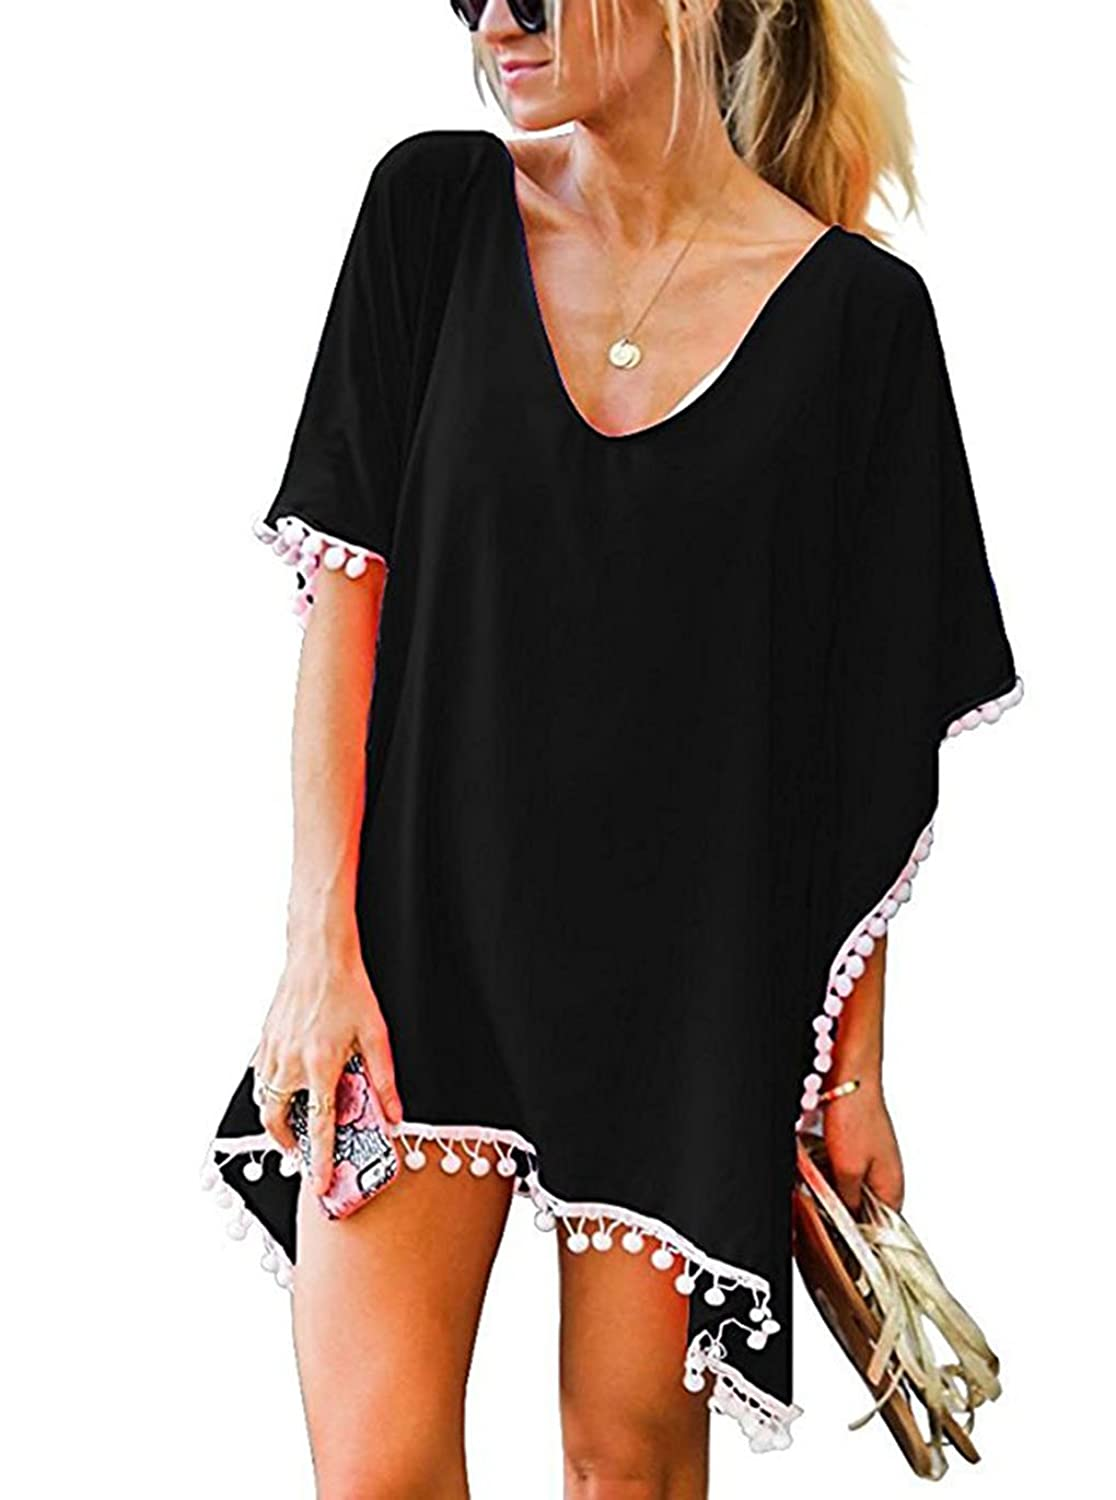 a9290d3f9c Pull On closure. This bathing suit cover ups is perfect for wearing at beach,  swimming pool, poolside tanning salon, and Water Park. This beach dress ...